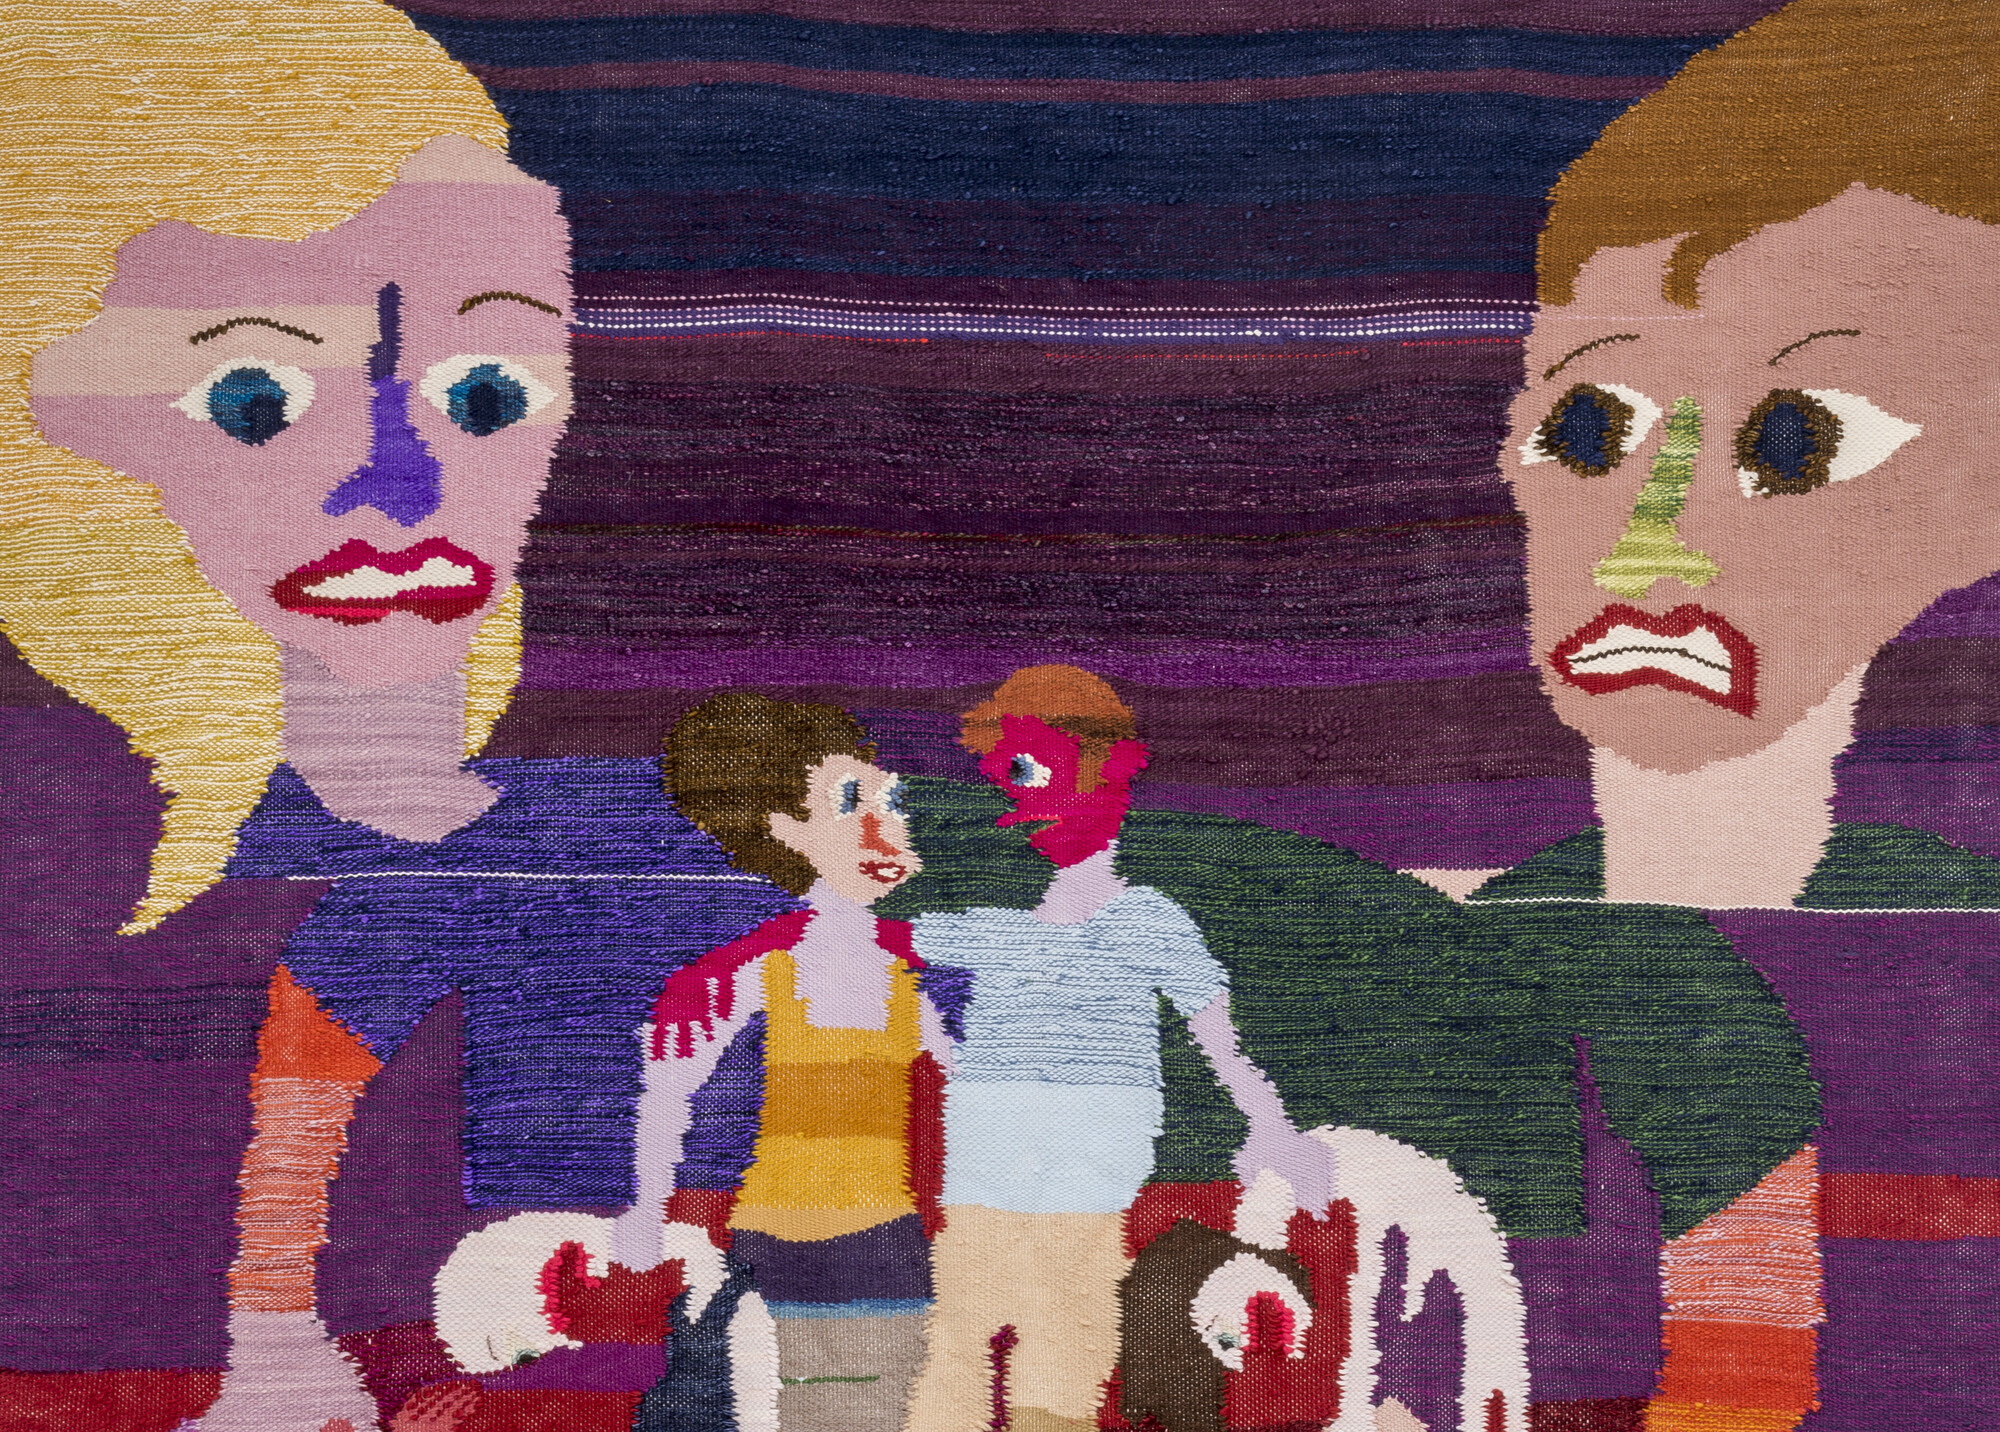 christina forrer grappling hold at swiss institute art jobs news christina forrer gebunden detail 2017 cotton and wool courtesy the artist and grice bench los angeles